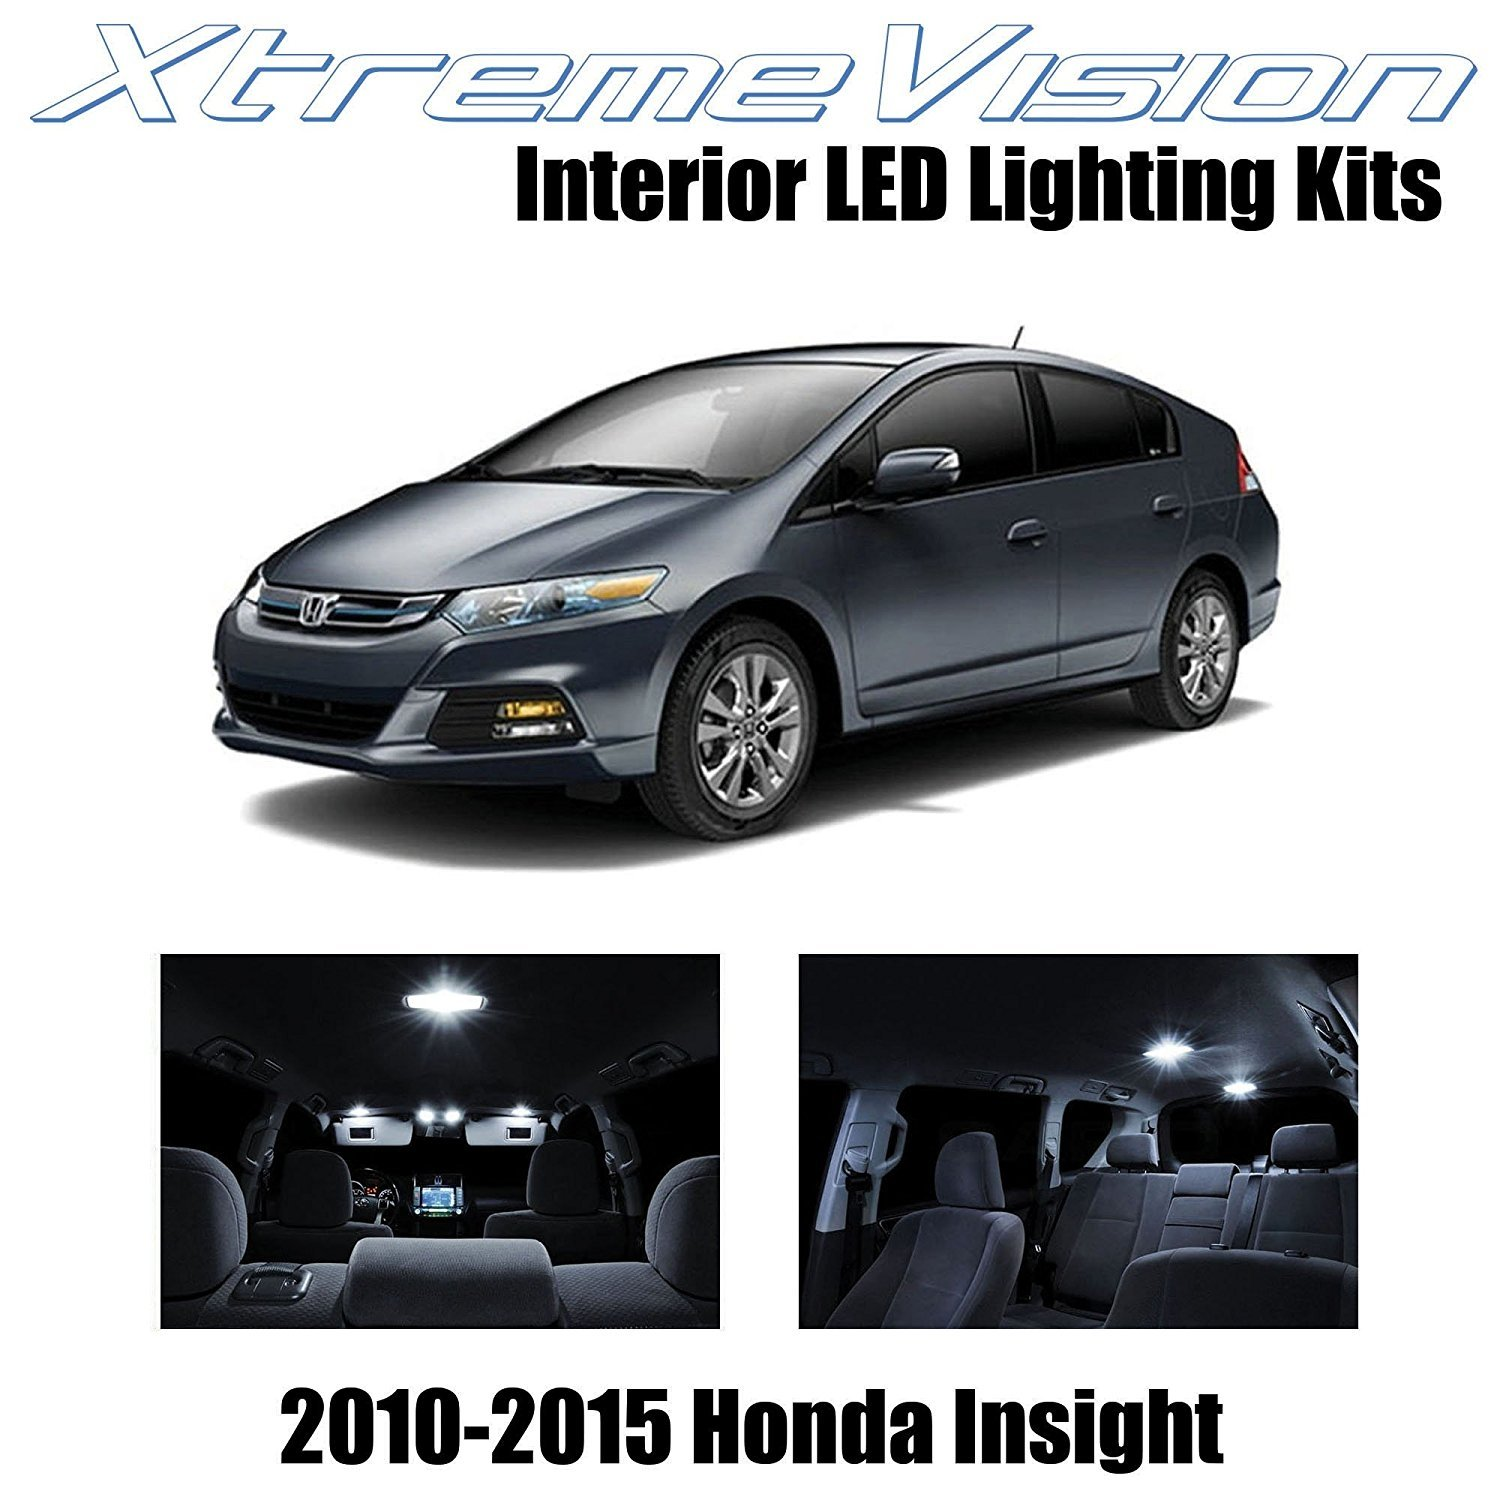 XtremeVision LED For Honda Insight 2010-2015 (3 Pieces